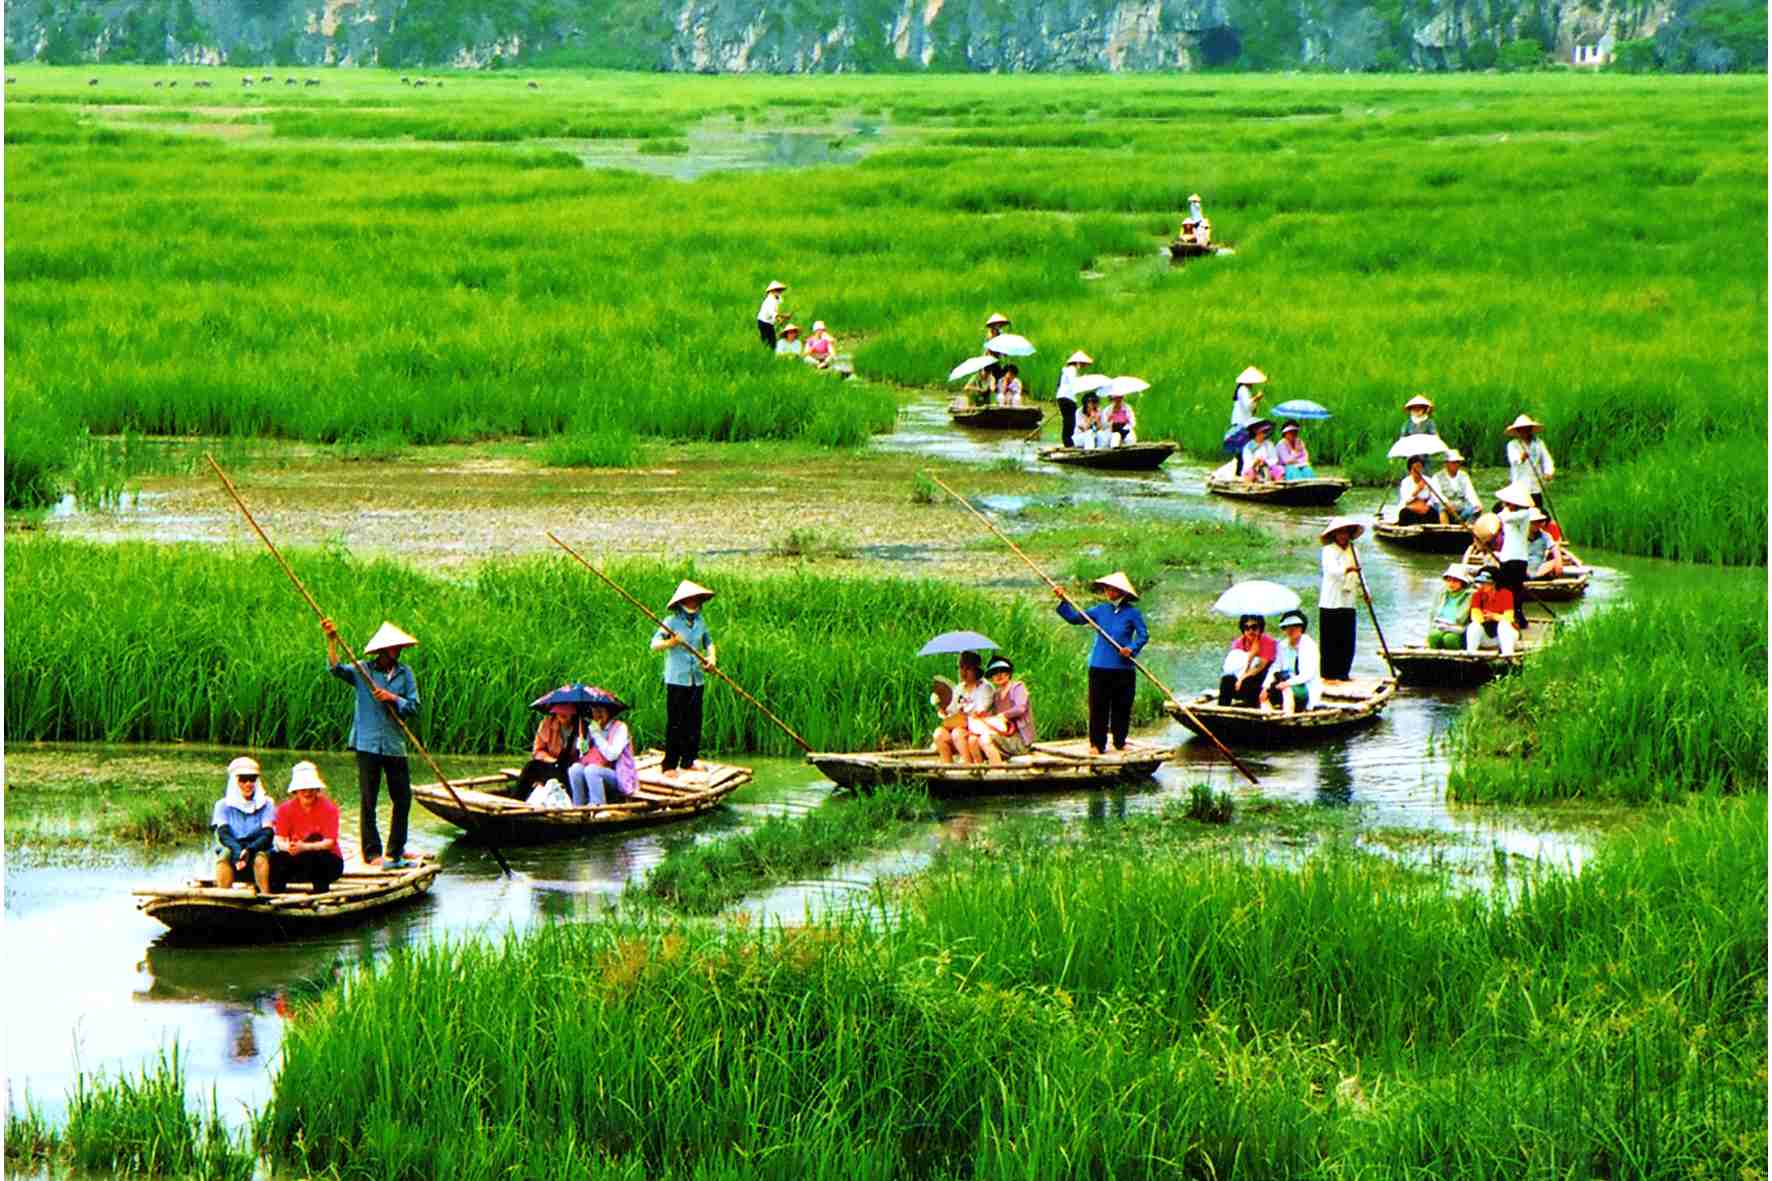 Hoa-Lu-Tam-Coc-Rowing-in-the-rice-field